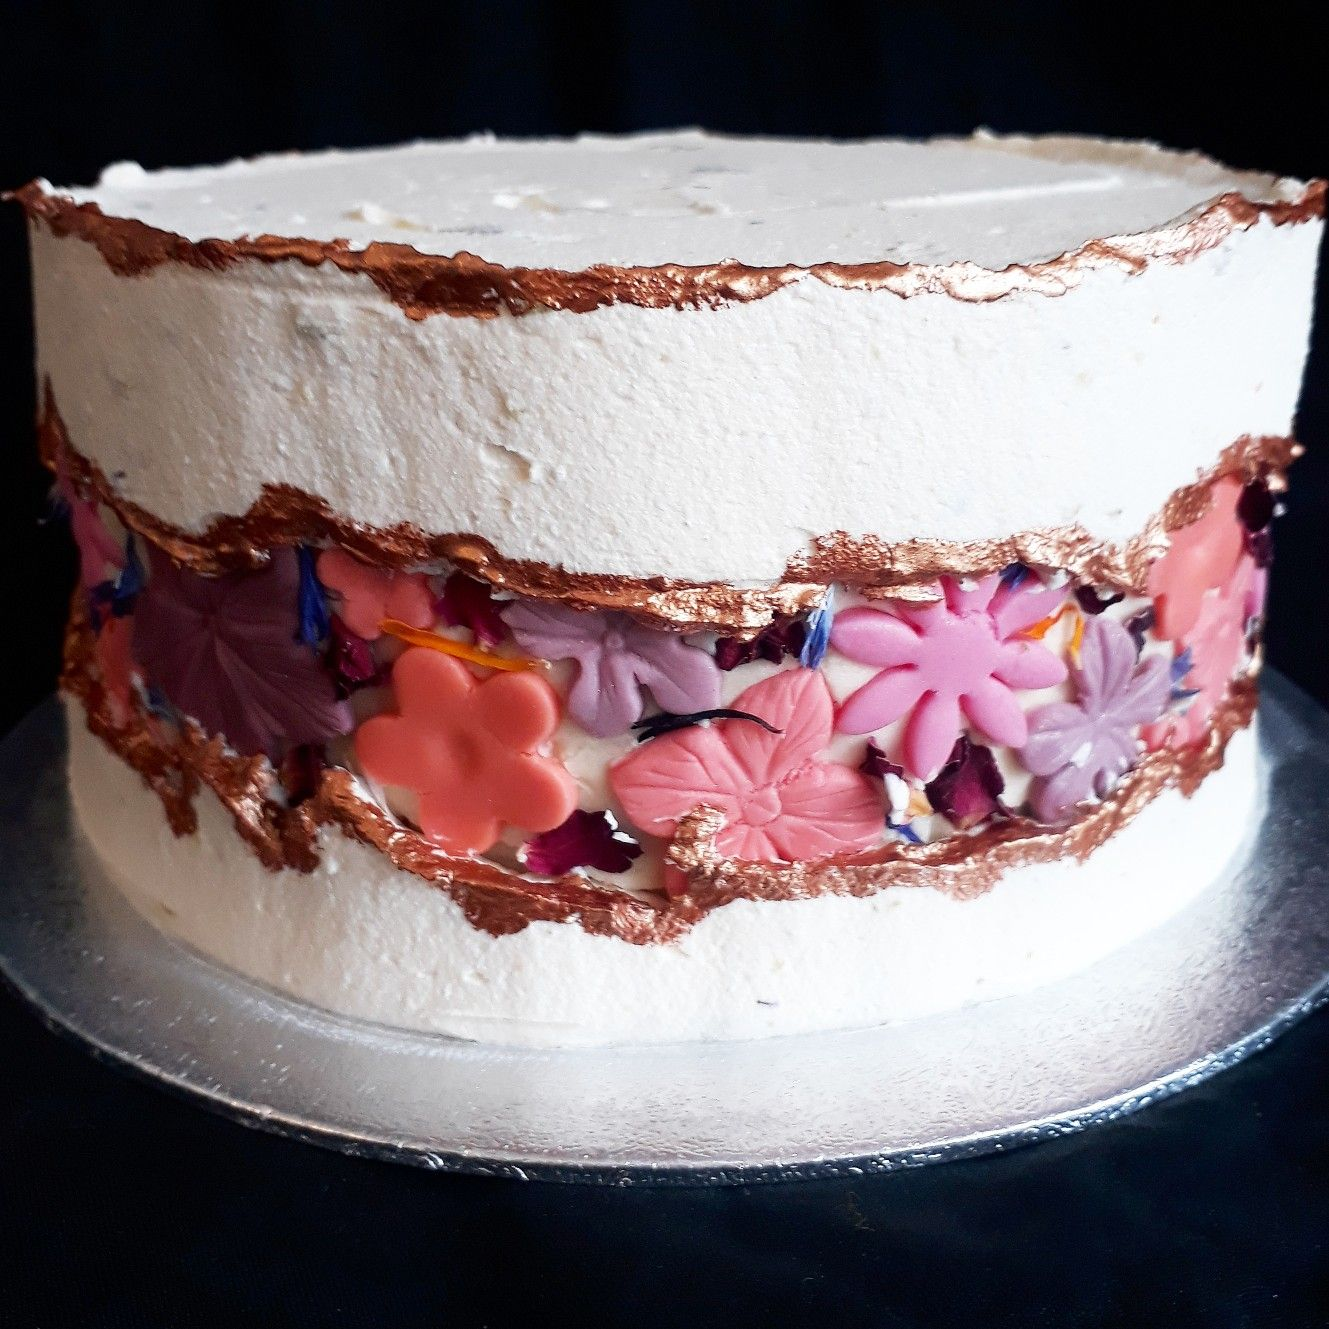 Cake Trends 2020.Biggest Growing Cake Trend 2019 2020 Love The Peachy Coral